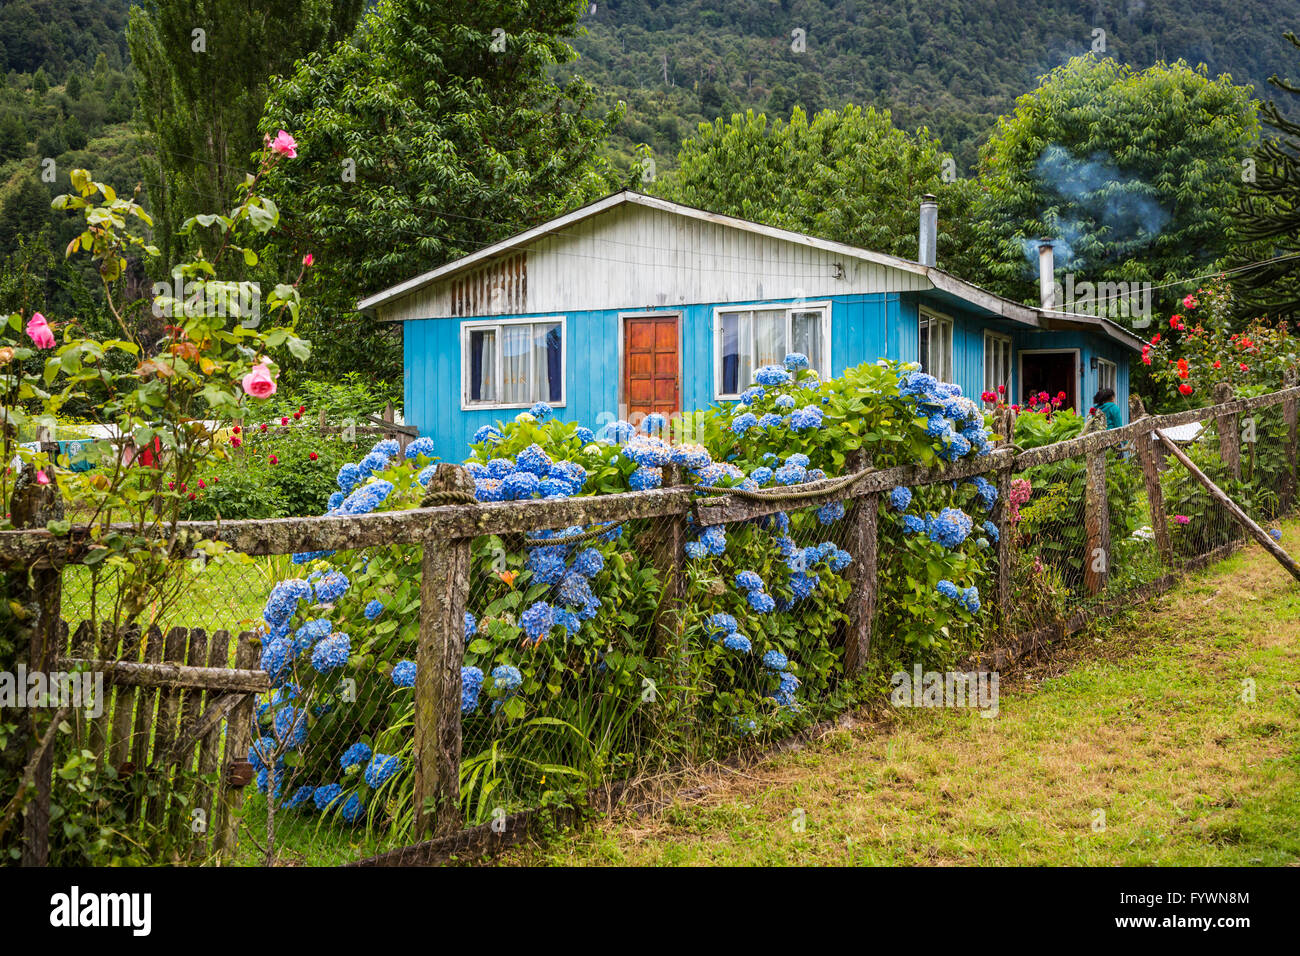 A rural farm home in the Hidden Valley near Puerto Aysen, Chile, South America. - Stock Image